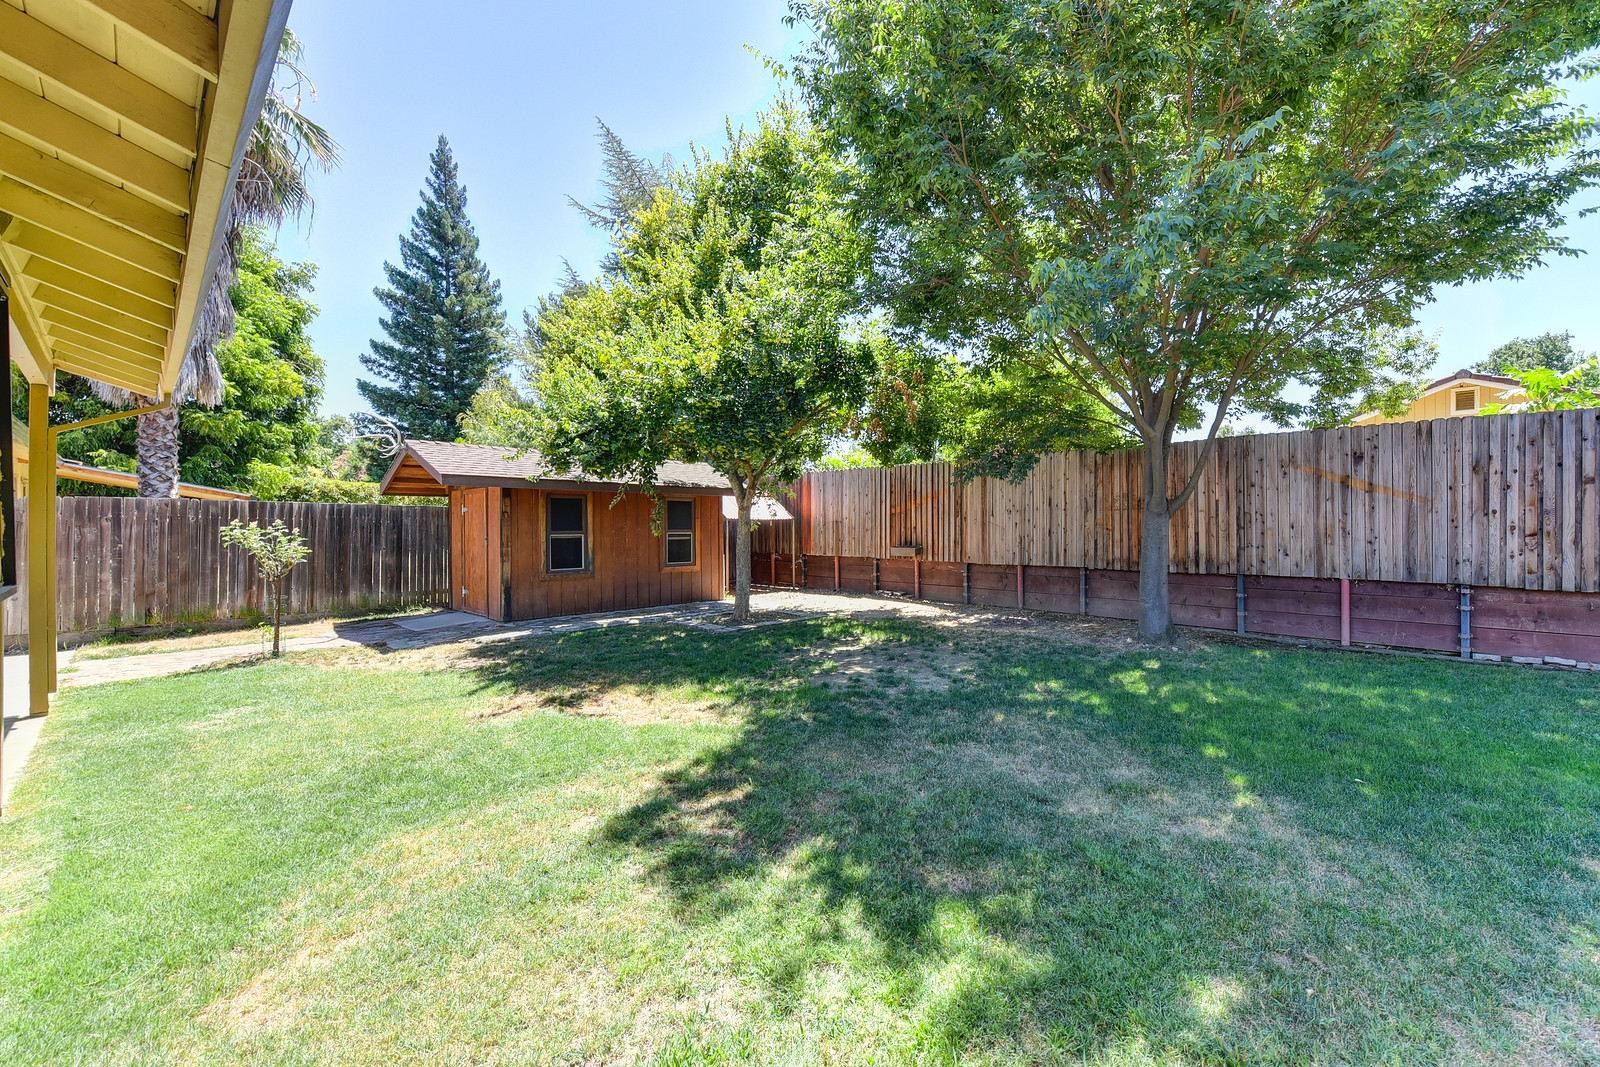 Backyard at 5342 Nyoda Way Carmichael California | Listed by Jesse Coffey with Keller Williams Realty